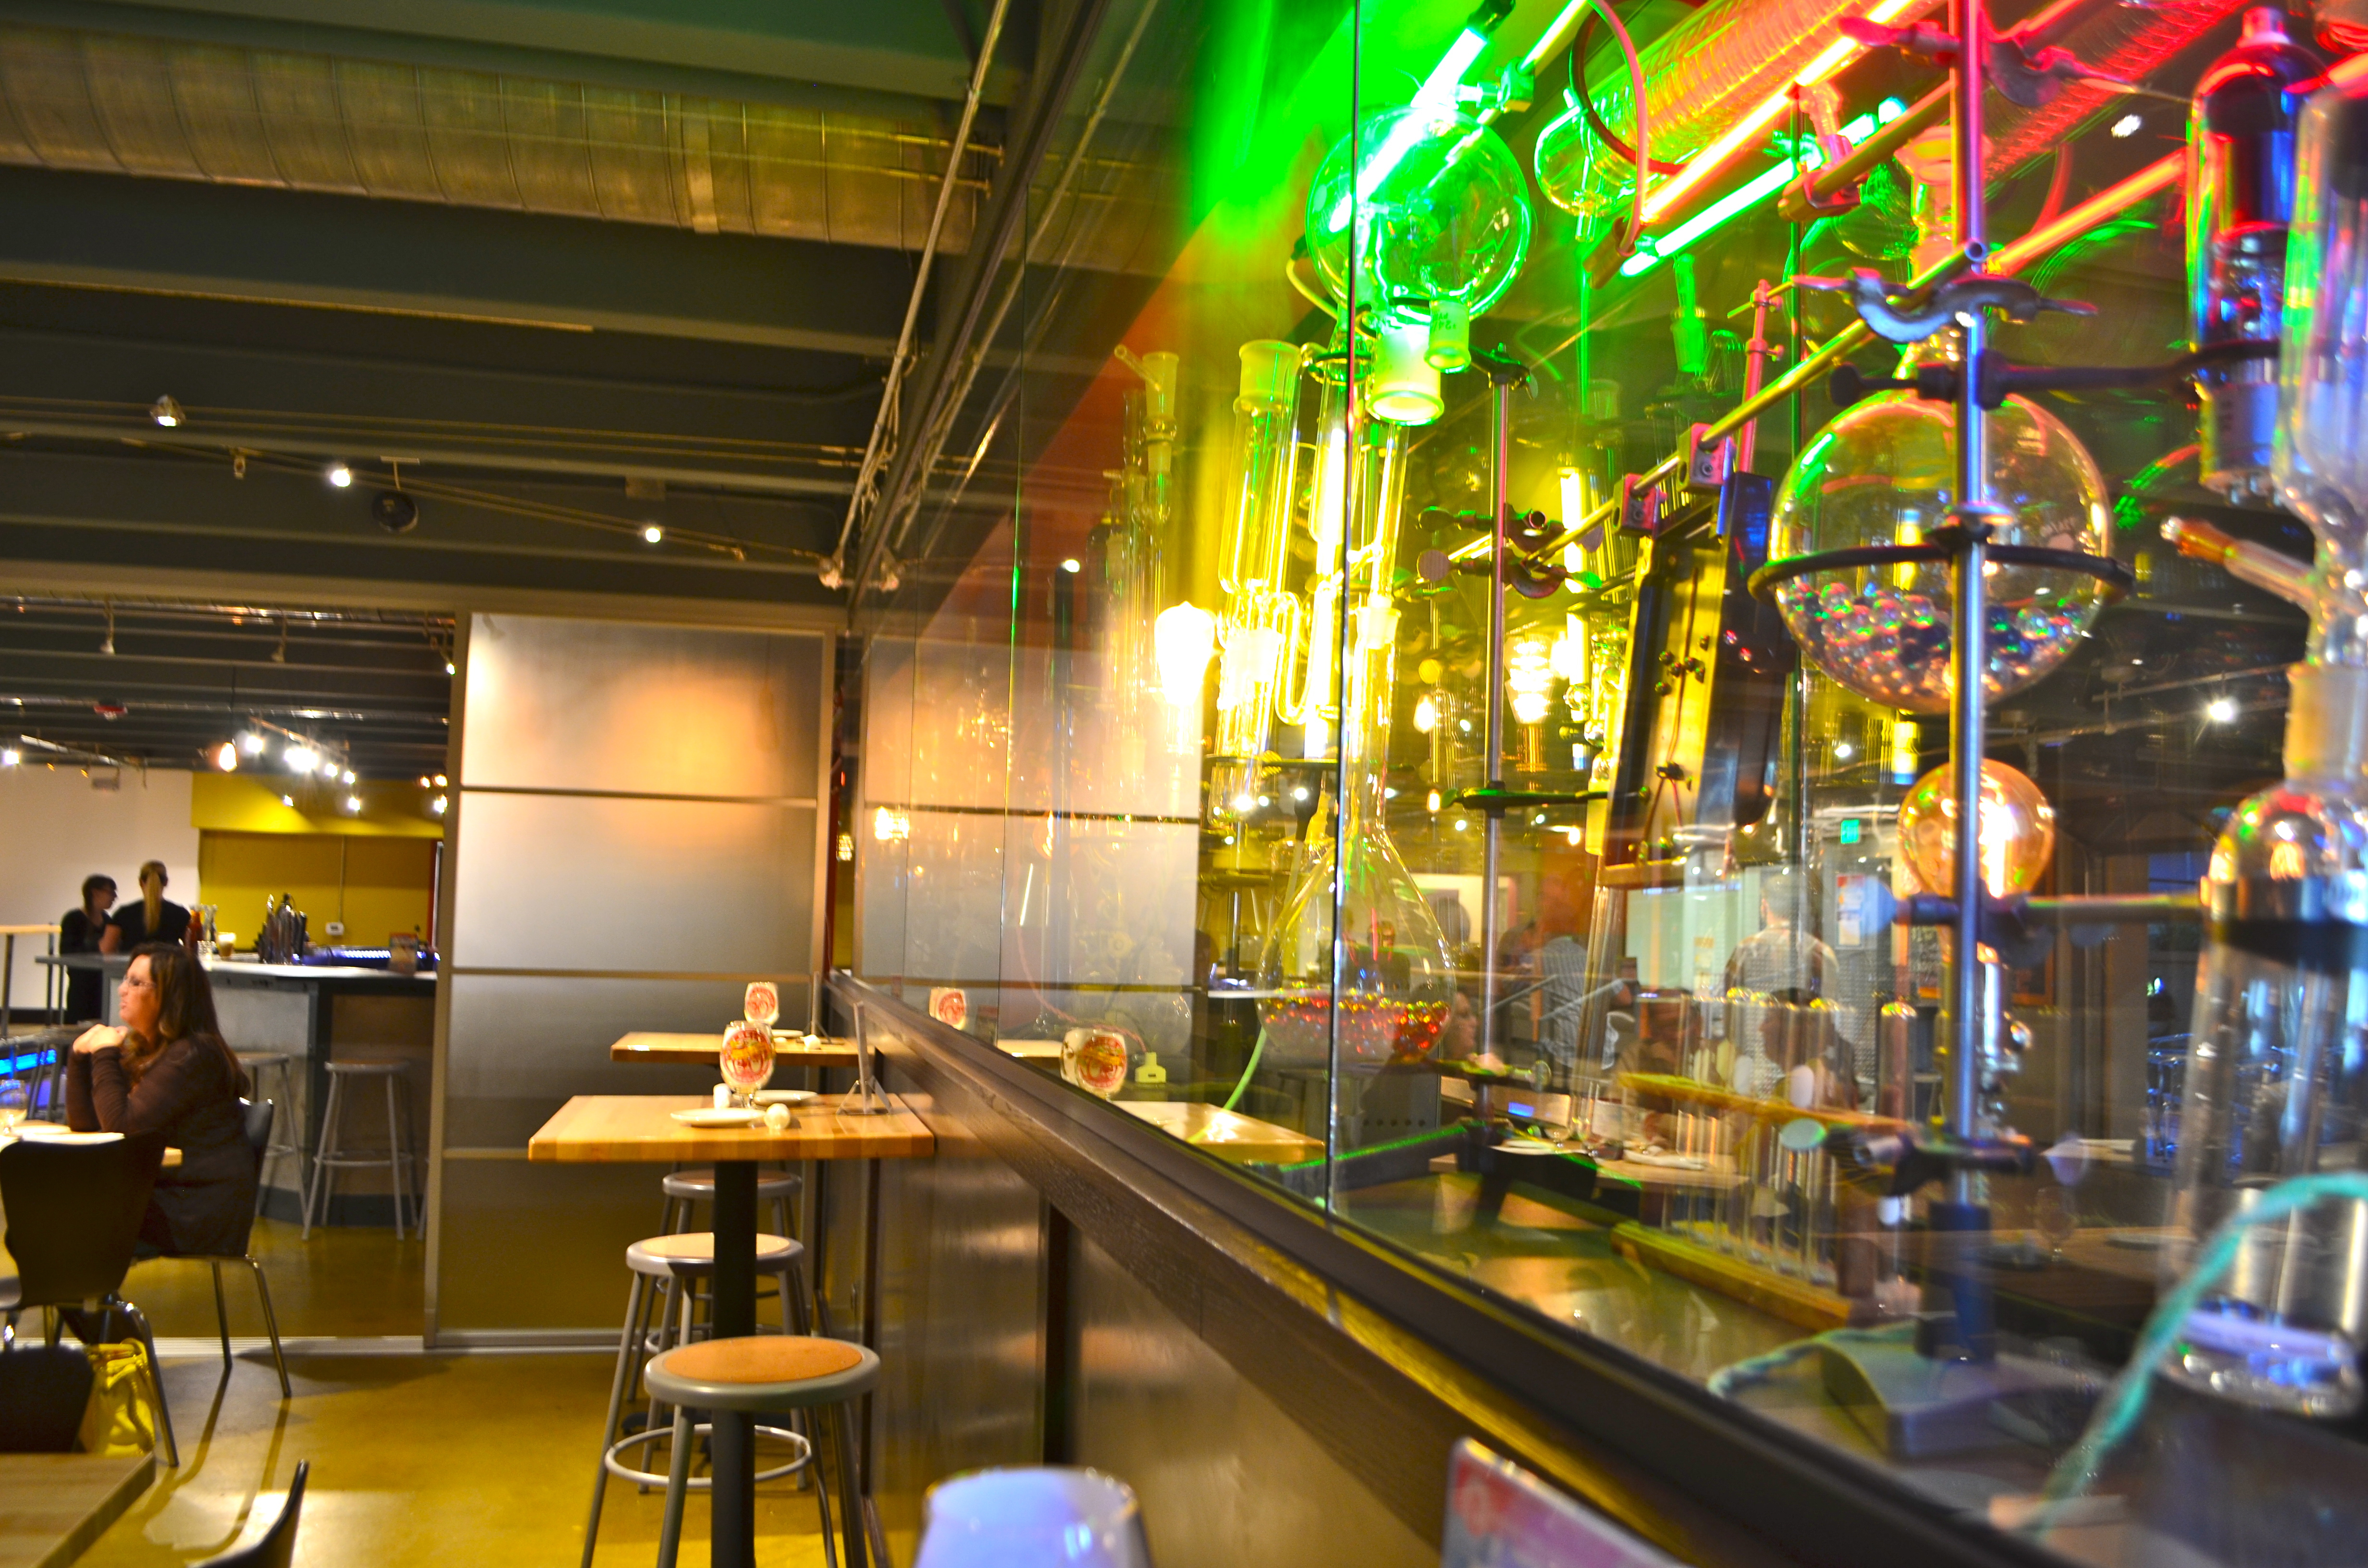 Glass garage doors restaurant -  The Spacious Restaurant Which Is Located In A Walk In Basement Style Space Decorated With Beakers Science Experimental Displays And Glass Garage Doors